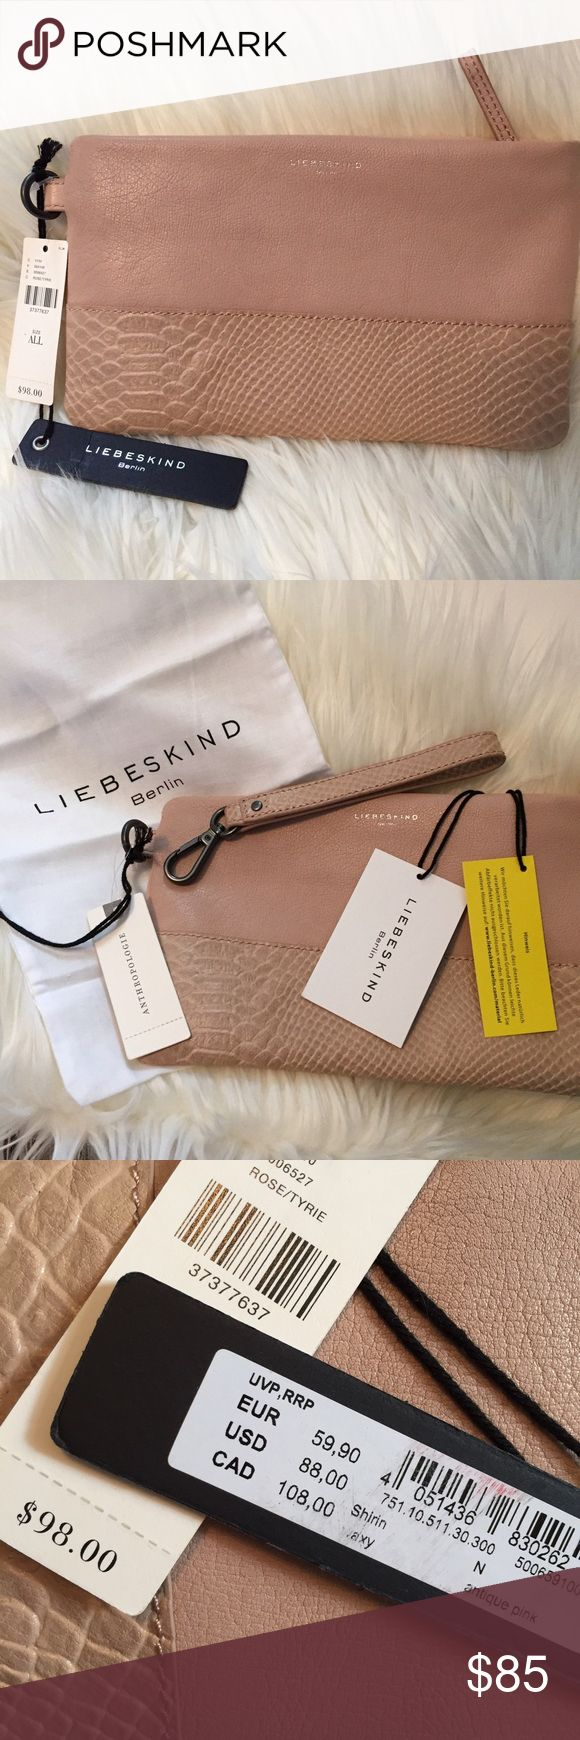 Anthropologie Liebeskind clutch leather wallet Brand new. Absolutely soft and supple leather clutch from Anthropologie / Liebeskind brand. Anthropologie Bags Clutches & Wristlets